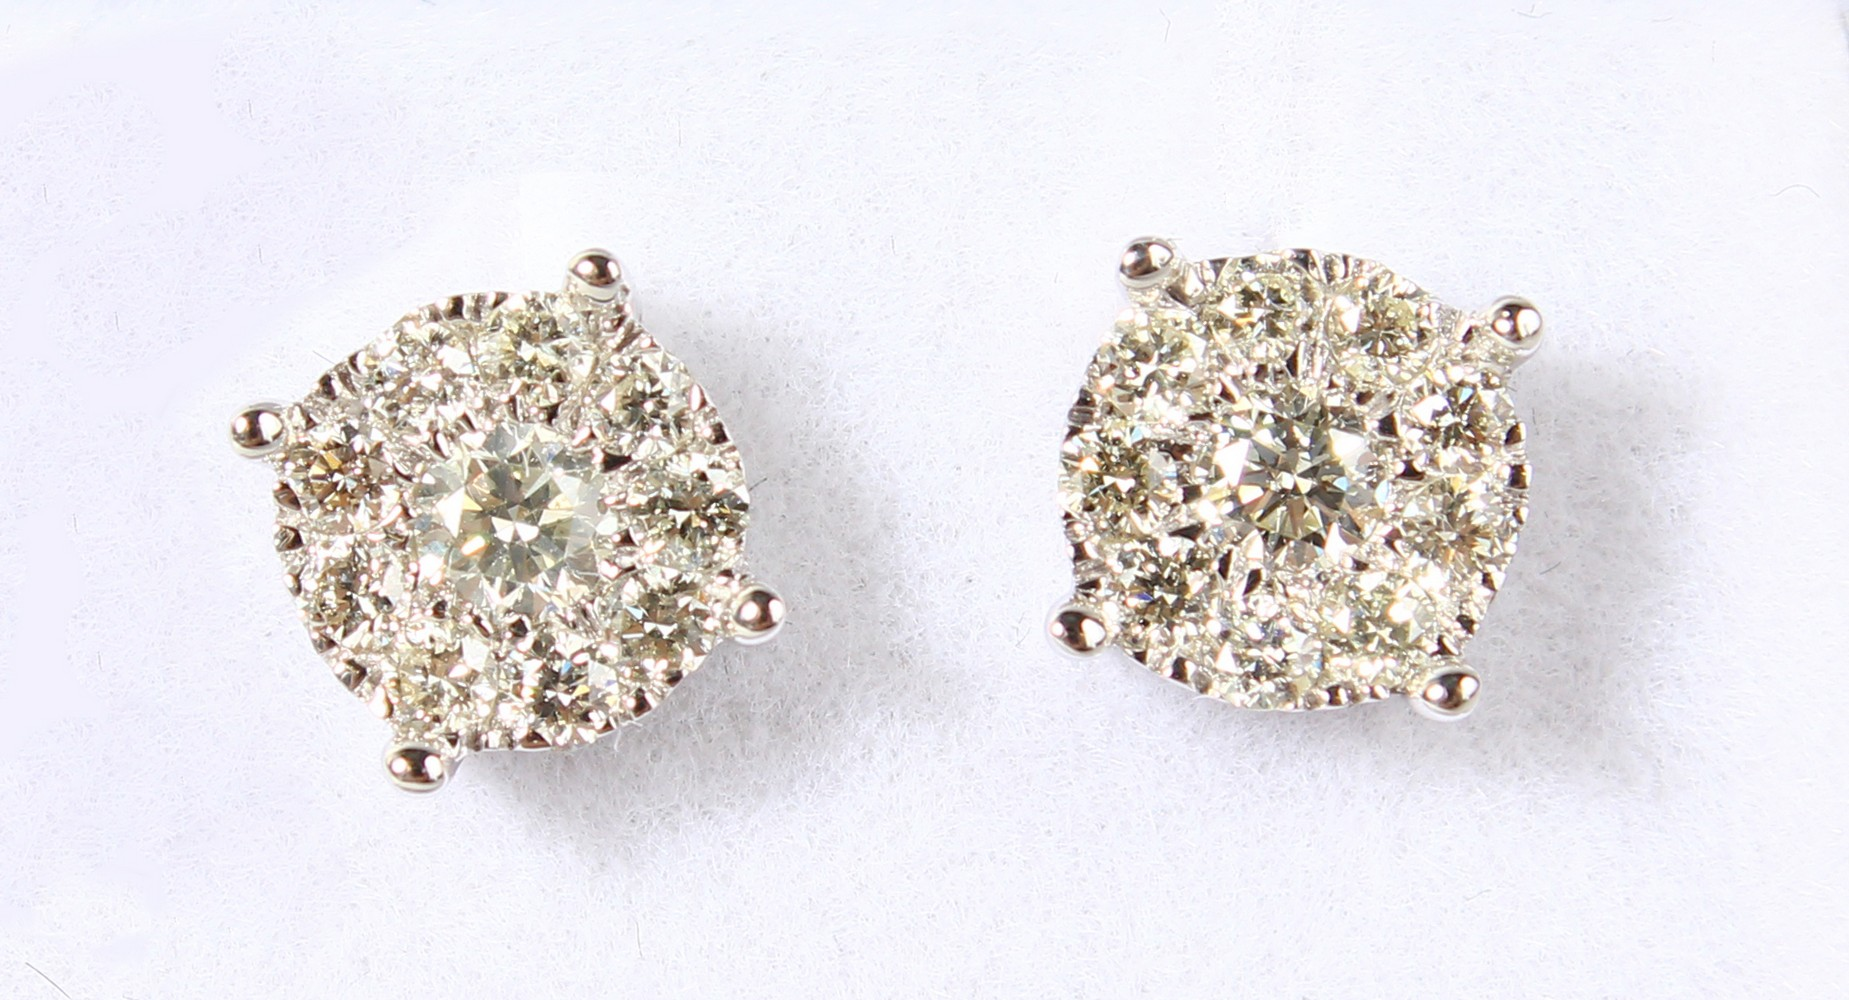 Lot 1782 - A GOOD PAIR OF 9CT GOLD CLUSTER EARRINGS.